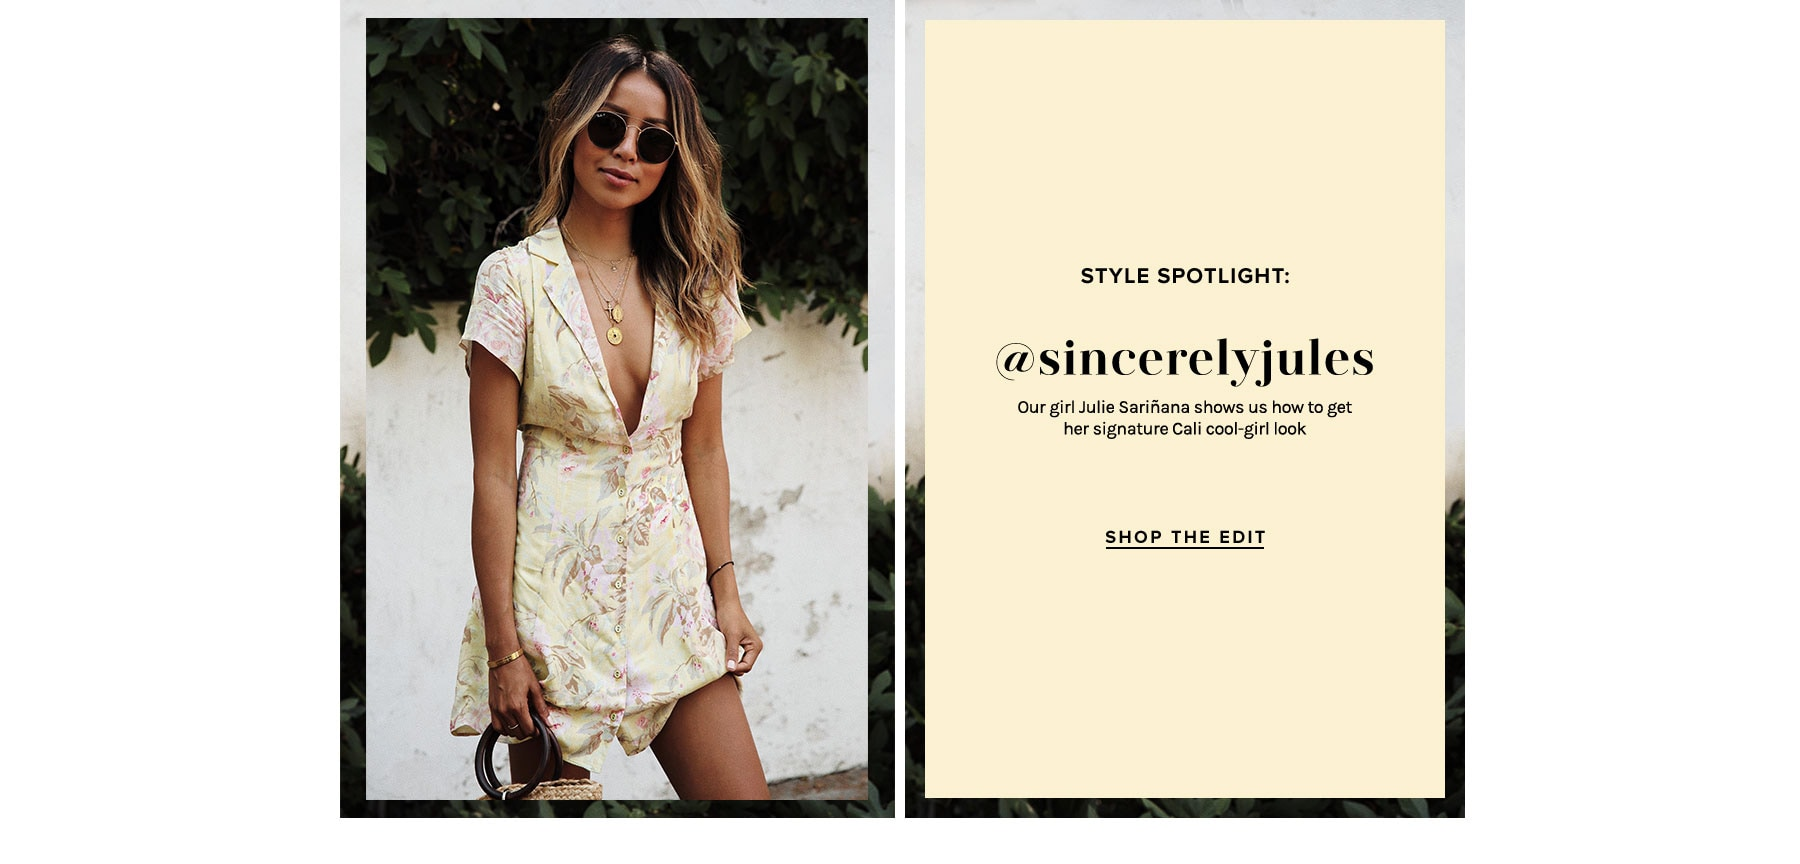 Style Spotlight: @sincerelyjules. Our girl Julie Sariñana shows us how to get her signature Cali cool-girl look. Shop The Edit.